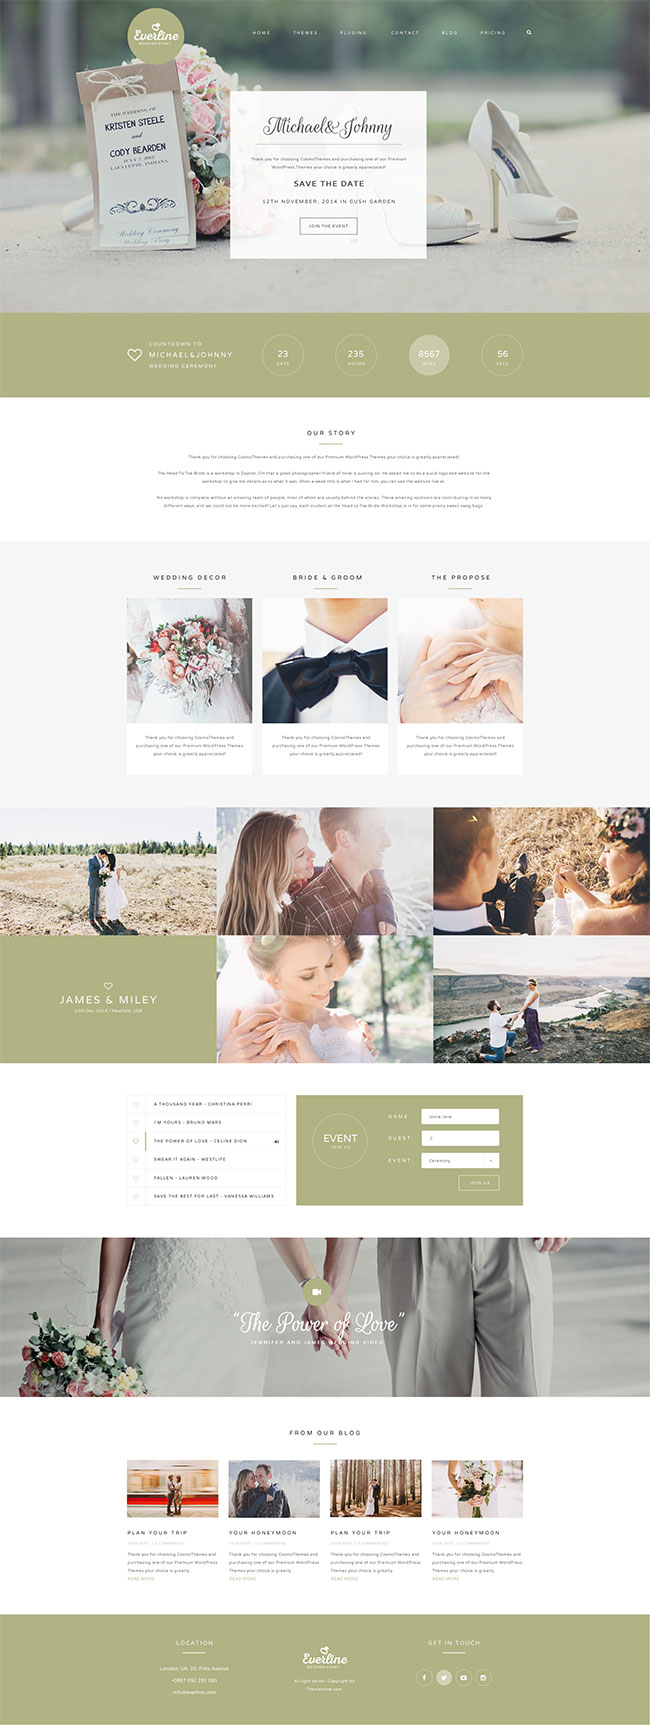 Wedding-Event-Everline-WordPress-Theme